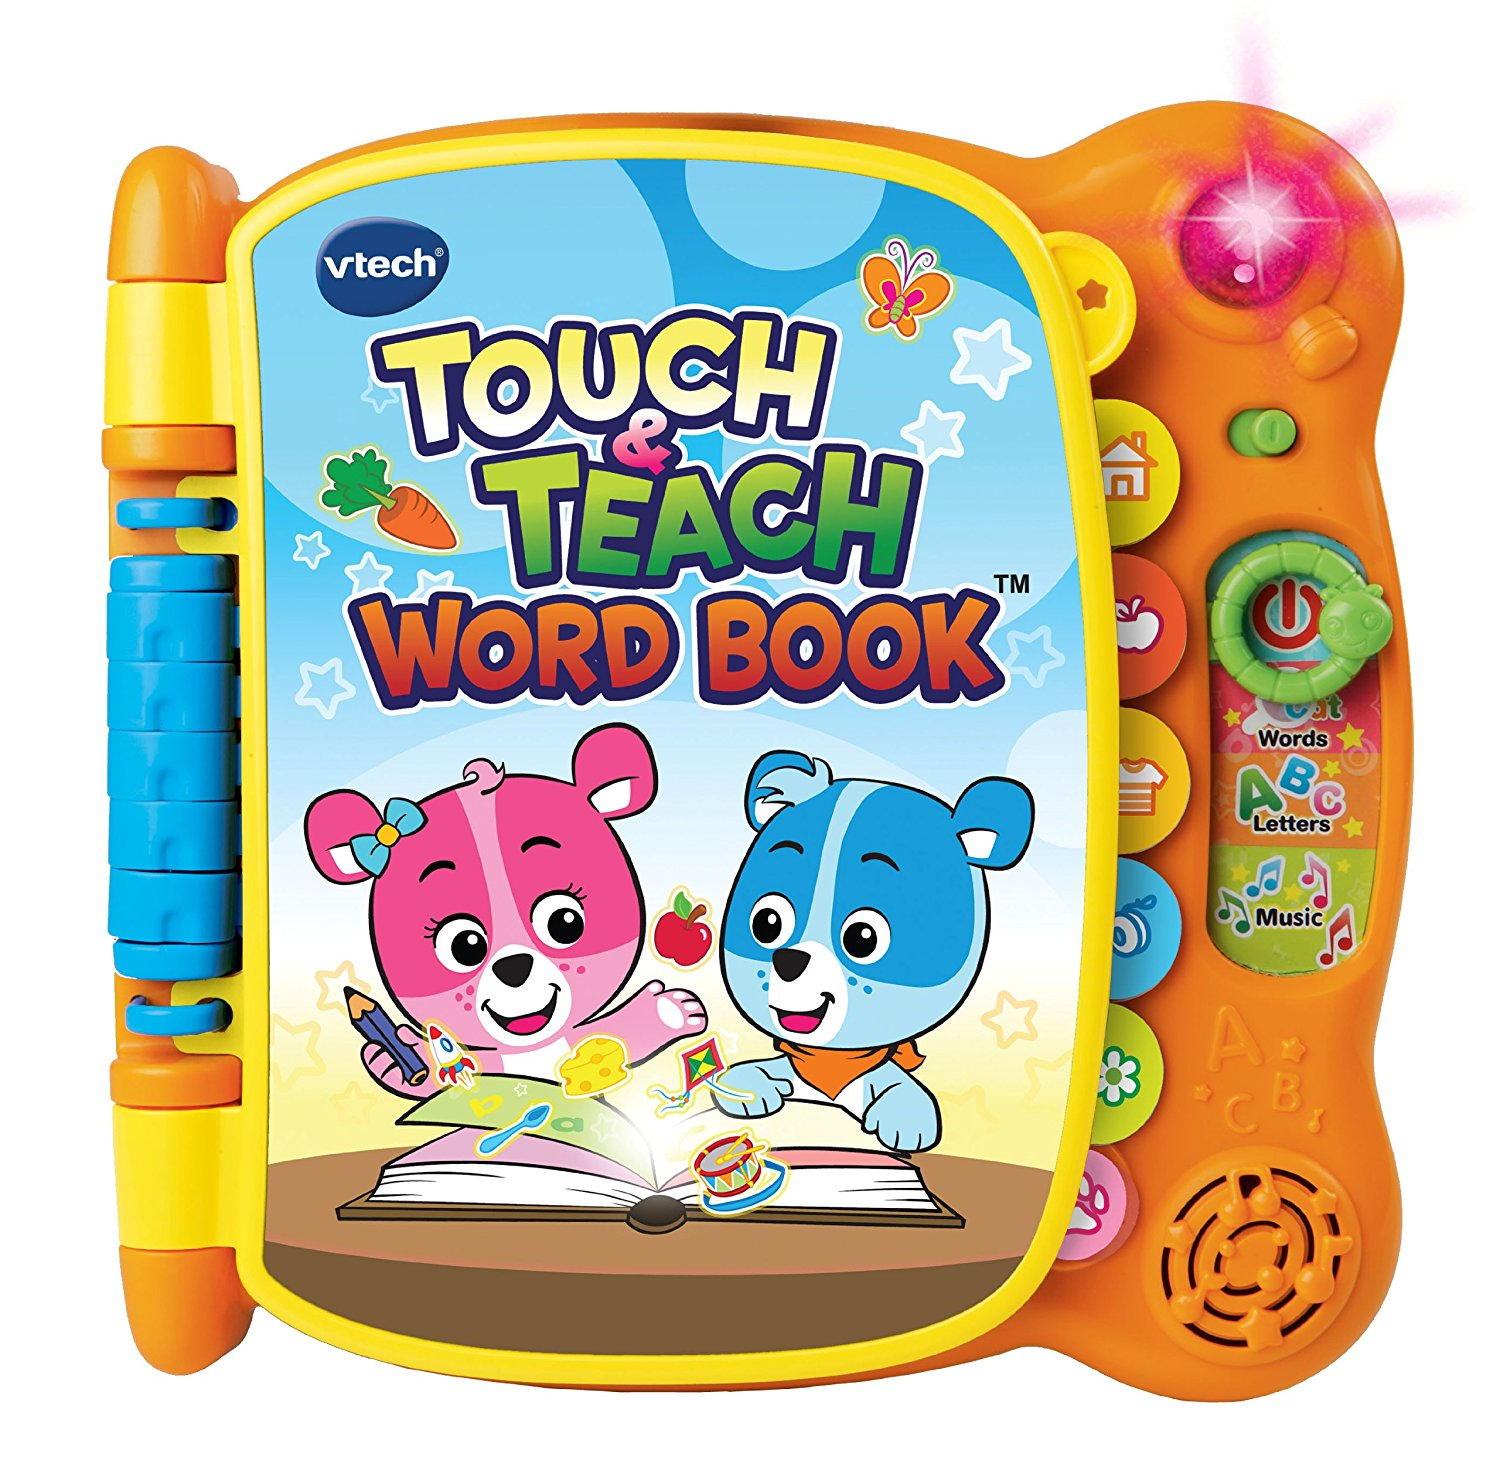 Touch and Teach Word Book By VTech Ship from US by